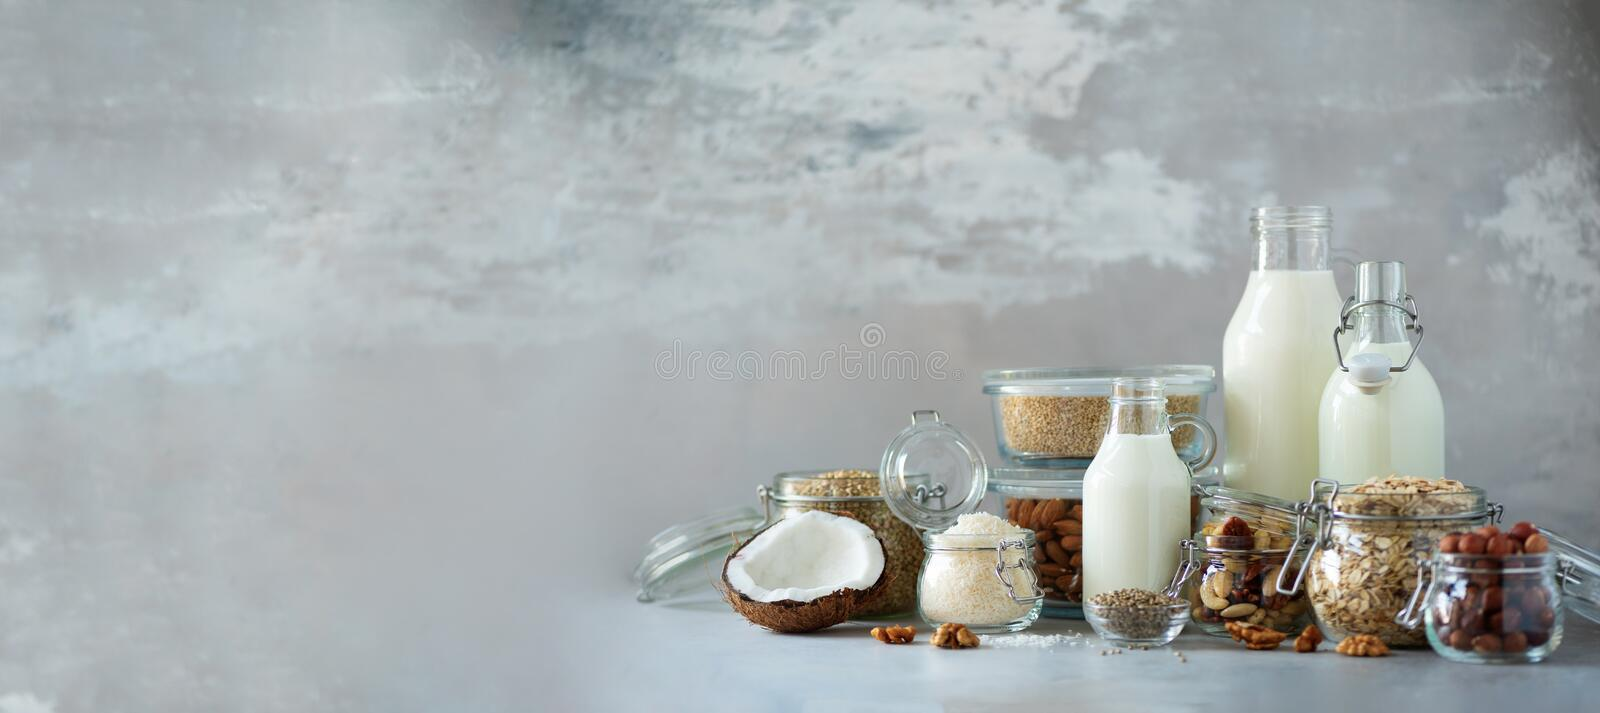 Glass bottles of vegan plant milk and almonds, nuts, coconut, hemp seed milk on grey concrete background. Banner with copy space. stock photos